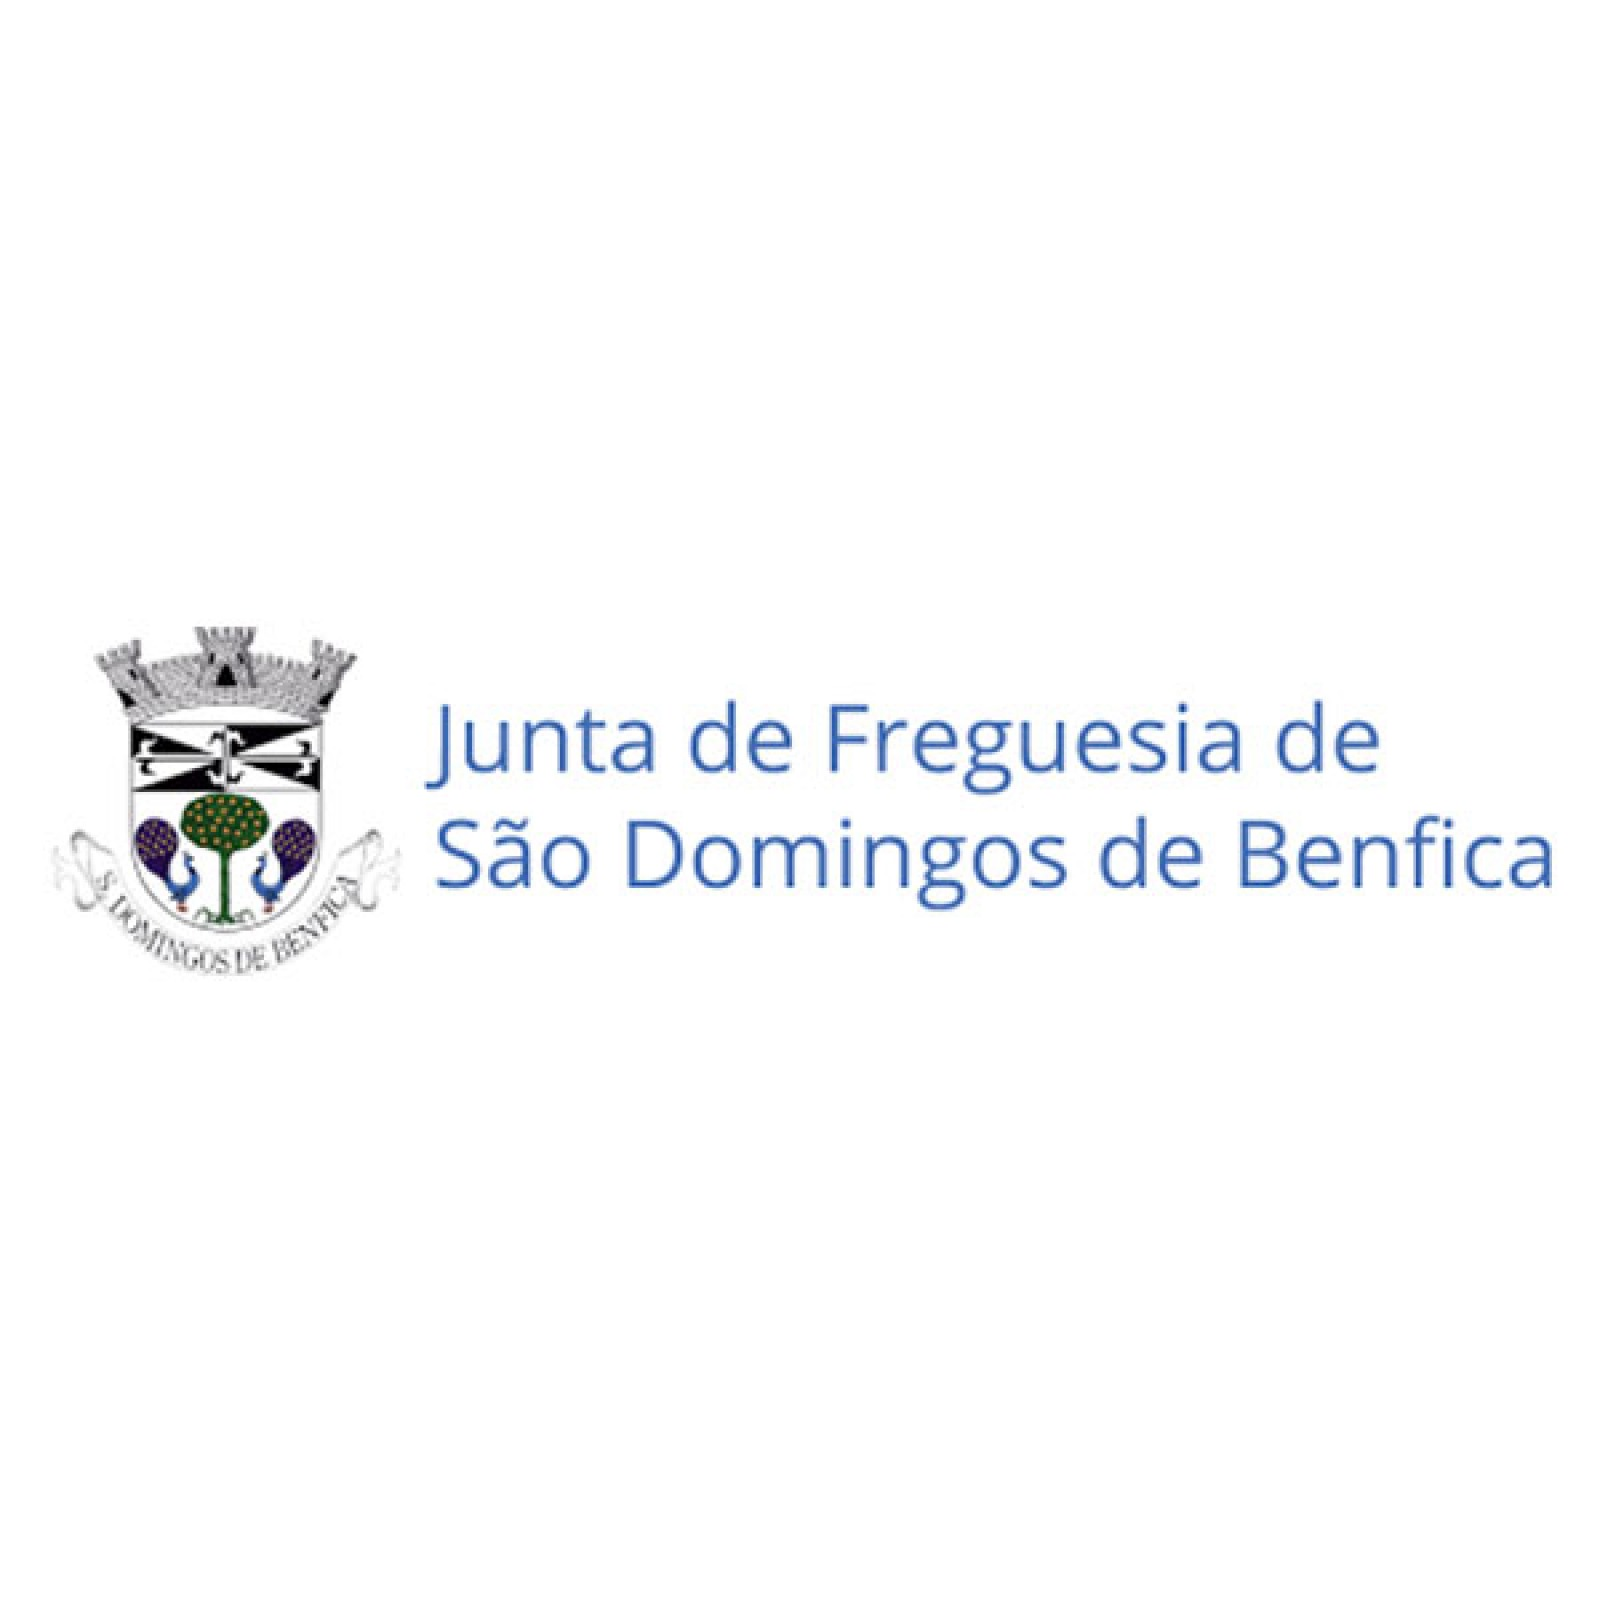 São Domingos de Benfica City Council